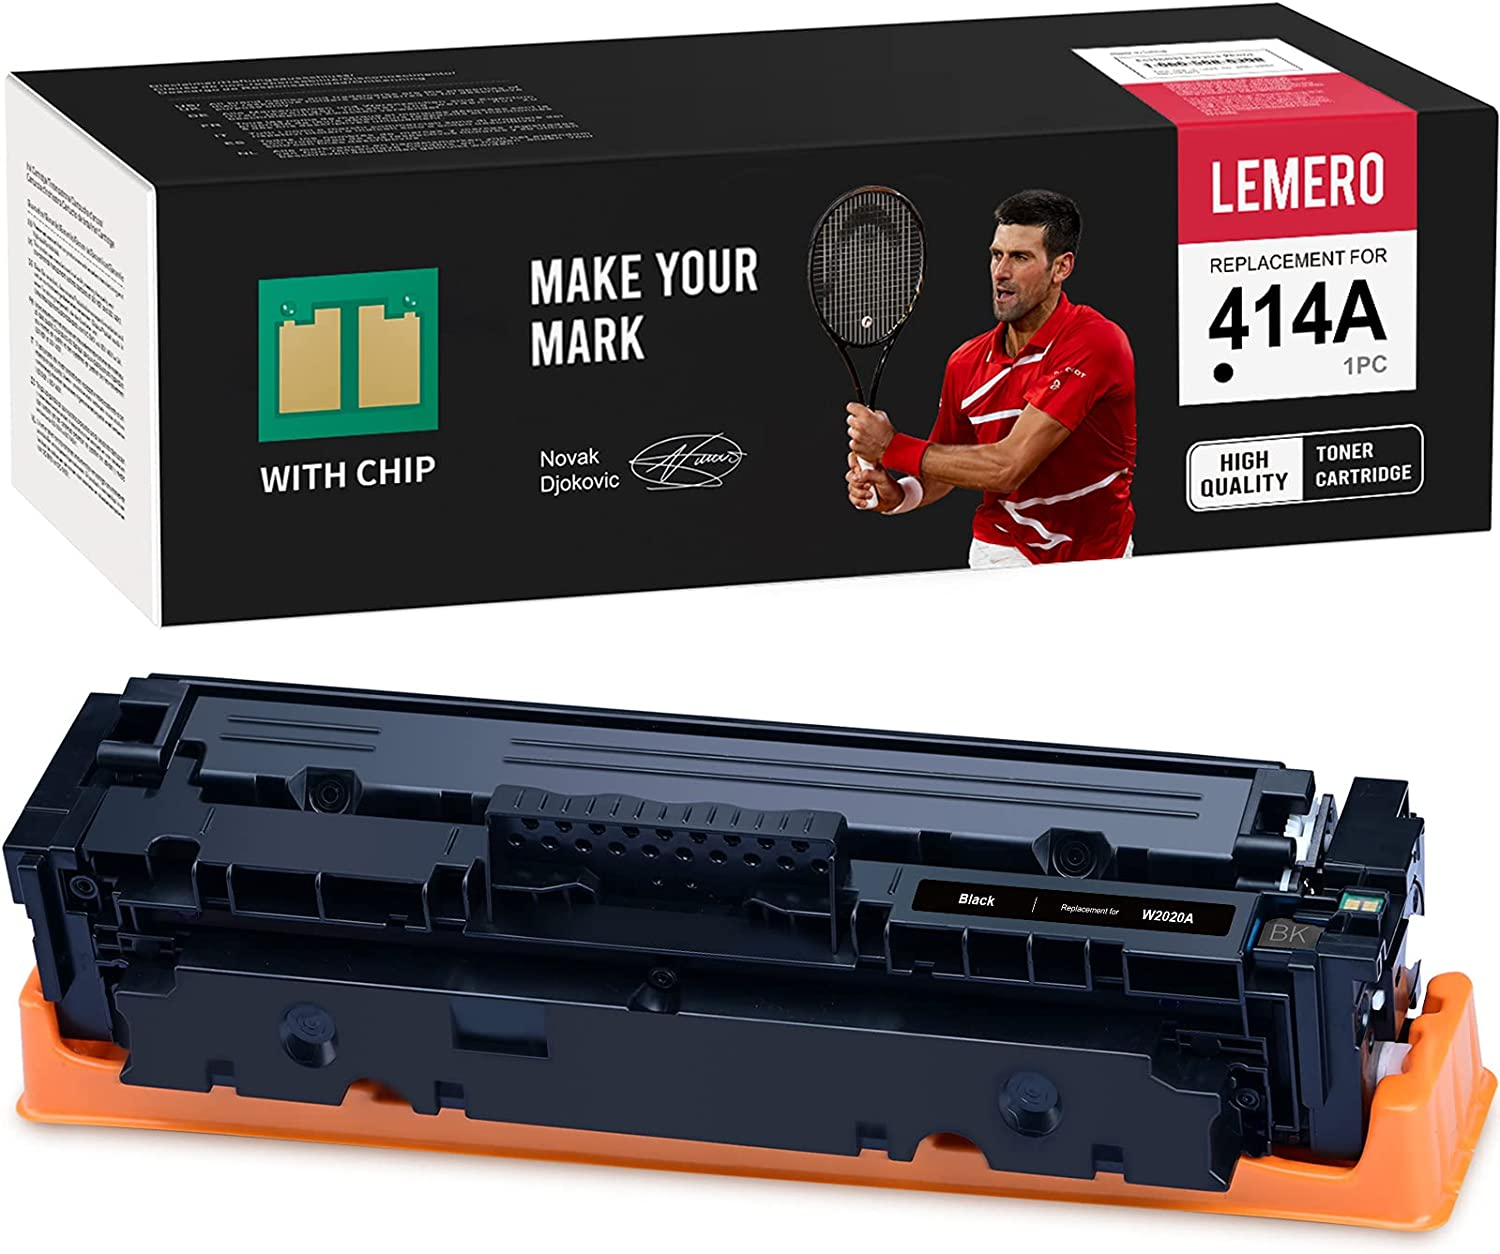 LEMERO (with Chip) Remanufactured Toner Cartridge Replacement for HP 414A 414X W2020A to use with Color Laserjet Pro M454dw M454dn MFP M479dw M479fdn M479fdw (Black, 1-Pack)